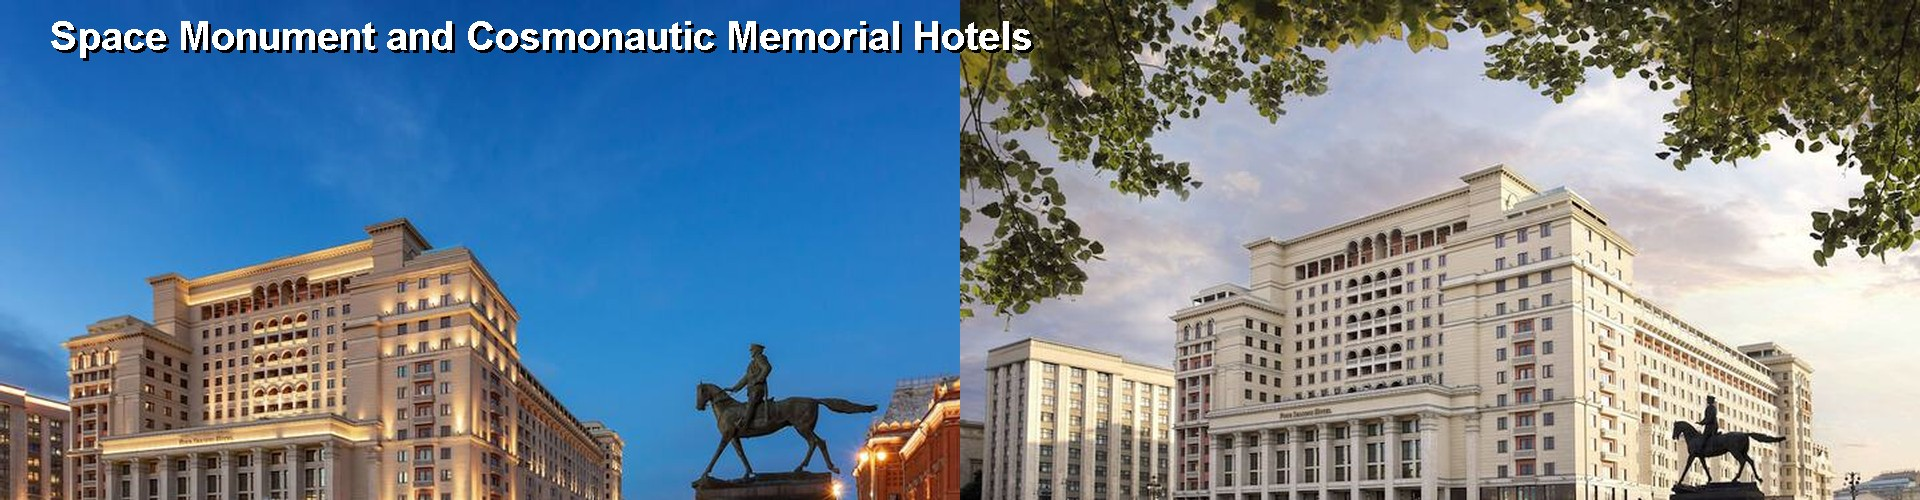 5 Best Hotels near Space Monument and Cosmonautic Memorial